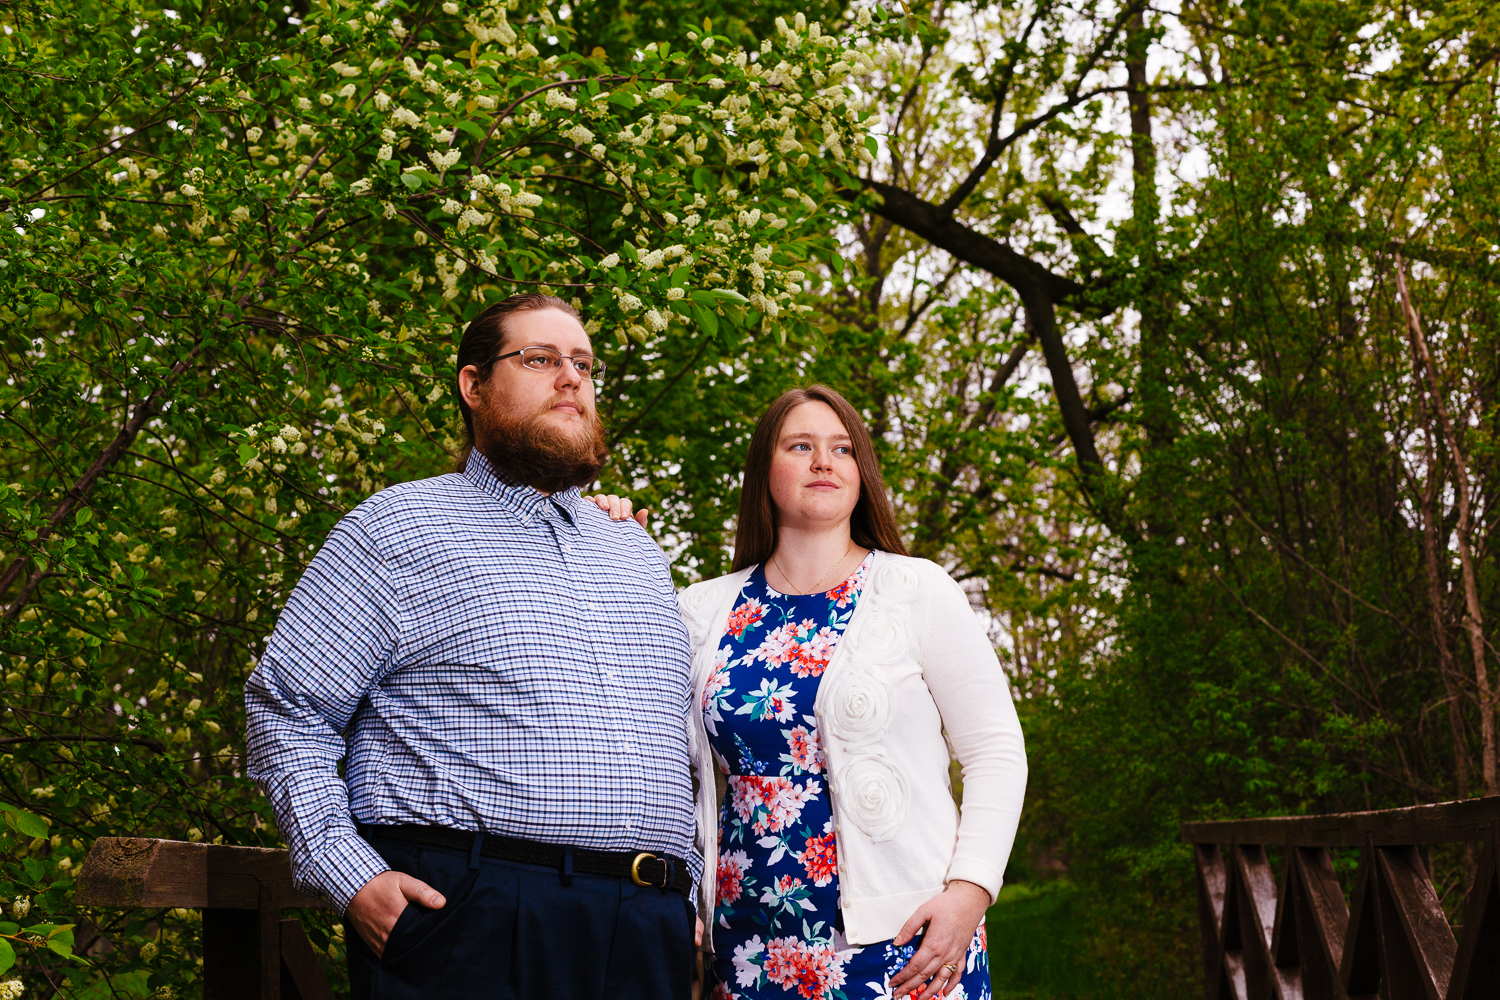 Man with beard in plaid shirt and woman in floral dress with white sweater look off into the distance.